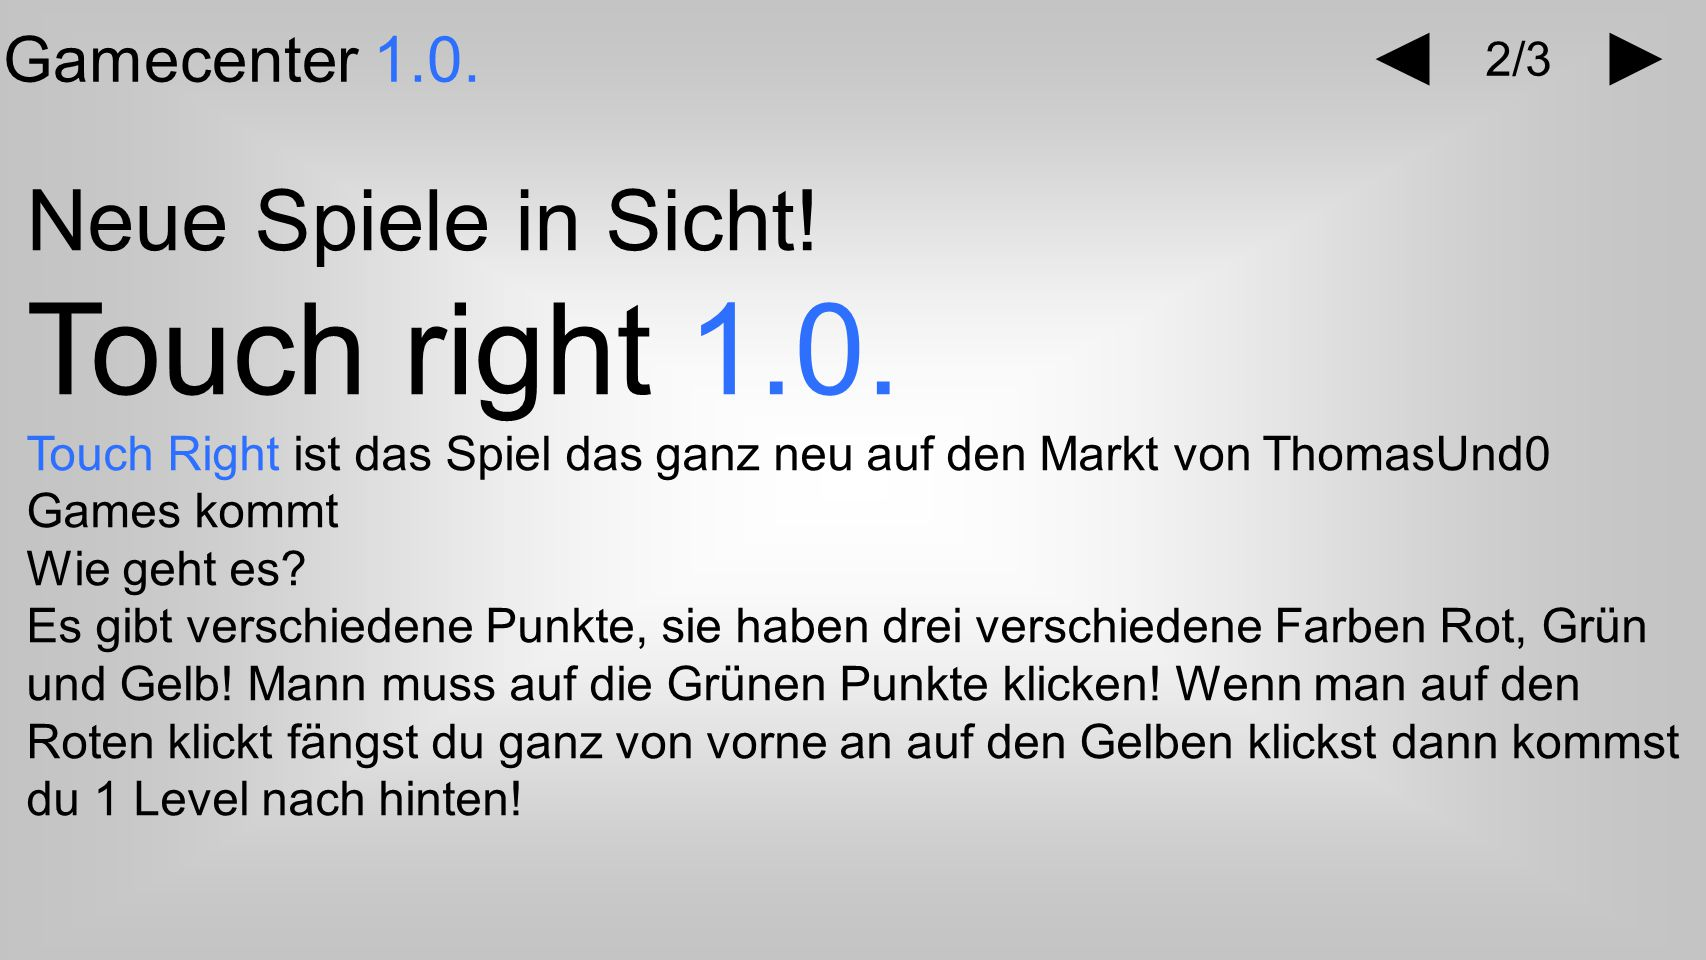 Text Gamecenter 1.0. Neue Spiele in Sicht. Touch right 1.0.